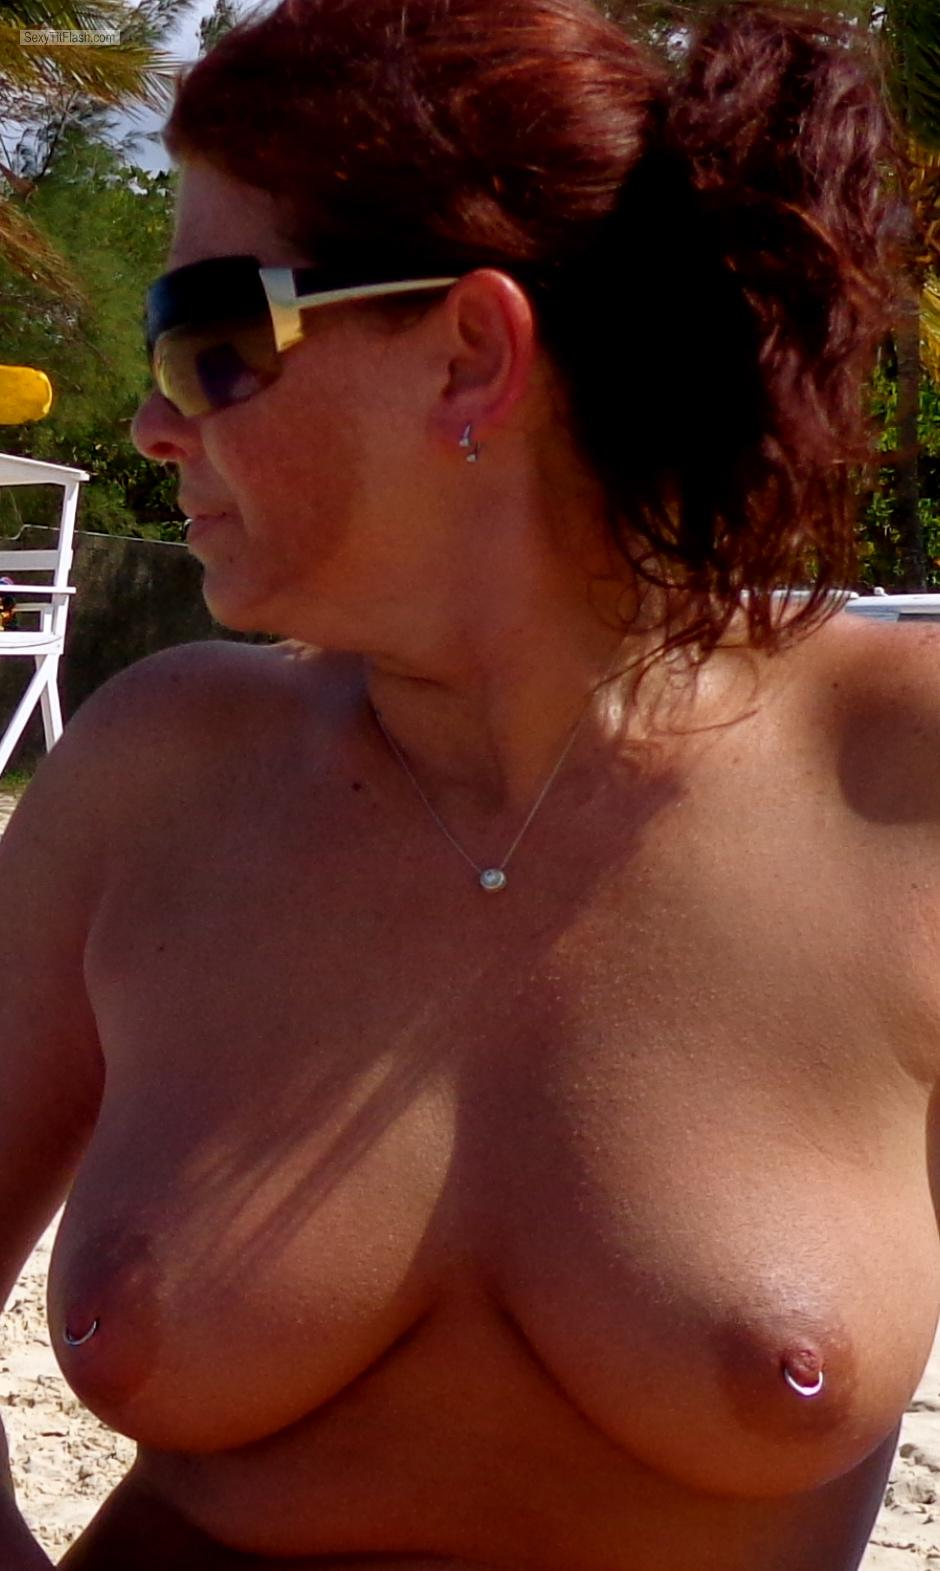 Medium Tits Of My Wife Topless Amanda